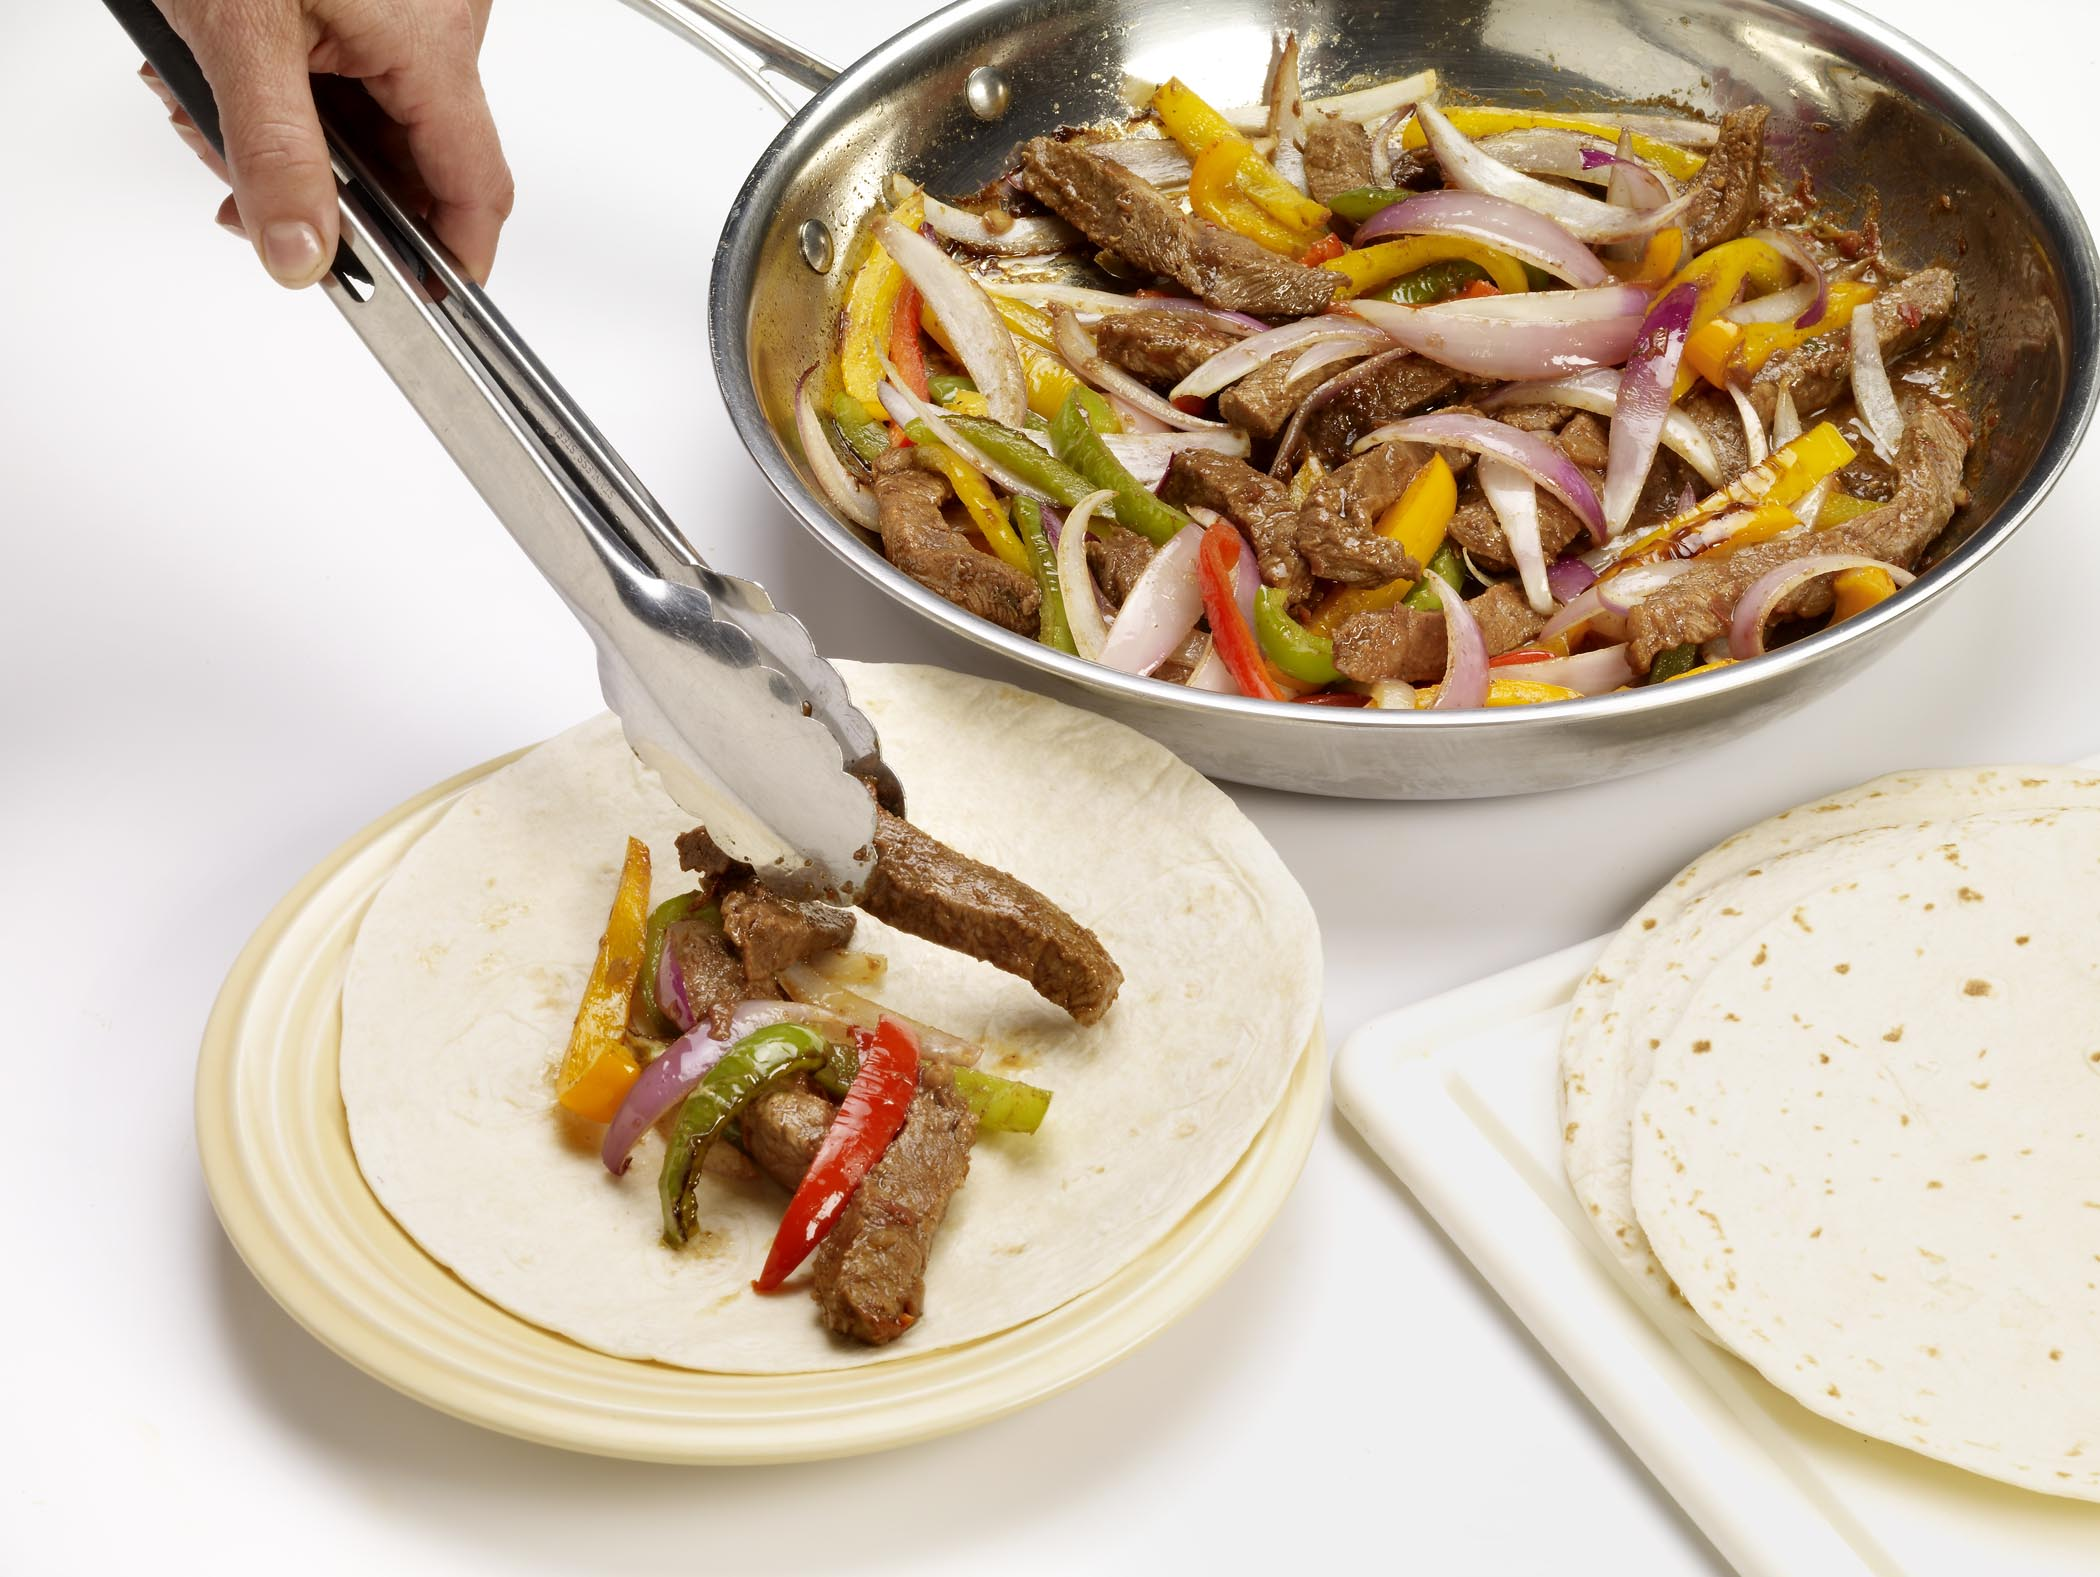 Cook until vegetables are crisply-tender, about 3 additional minutes.  Spoon meat mixture down the center of each tortilla.